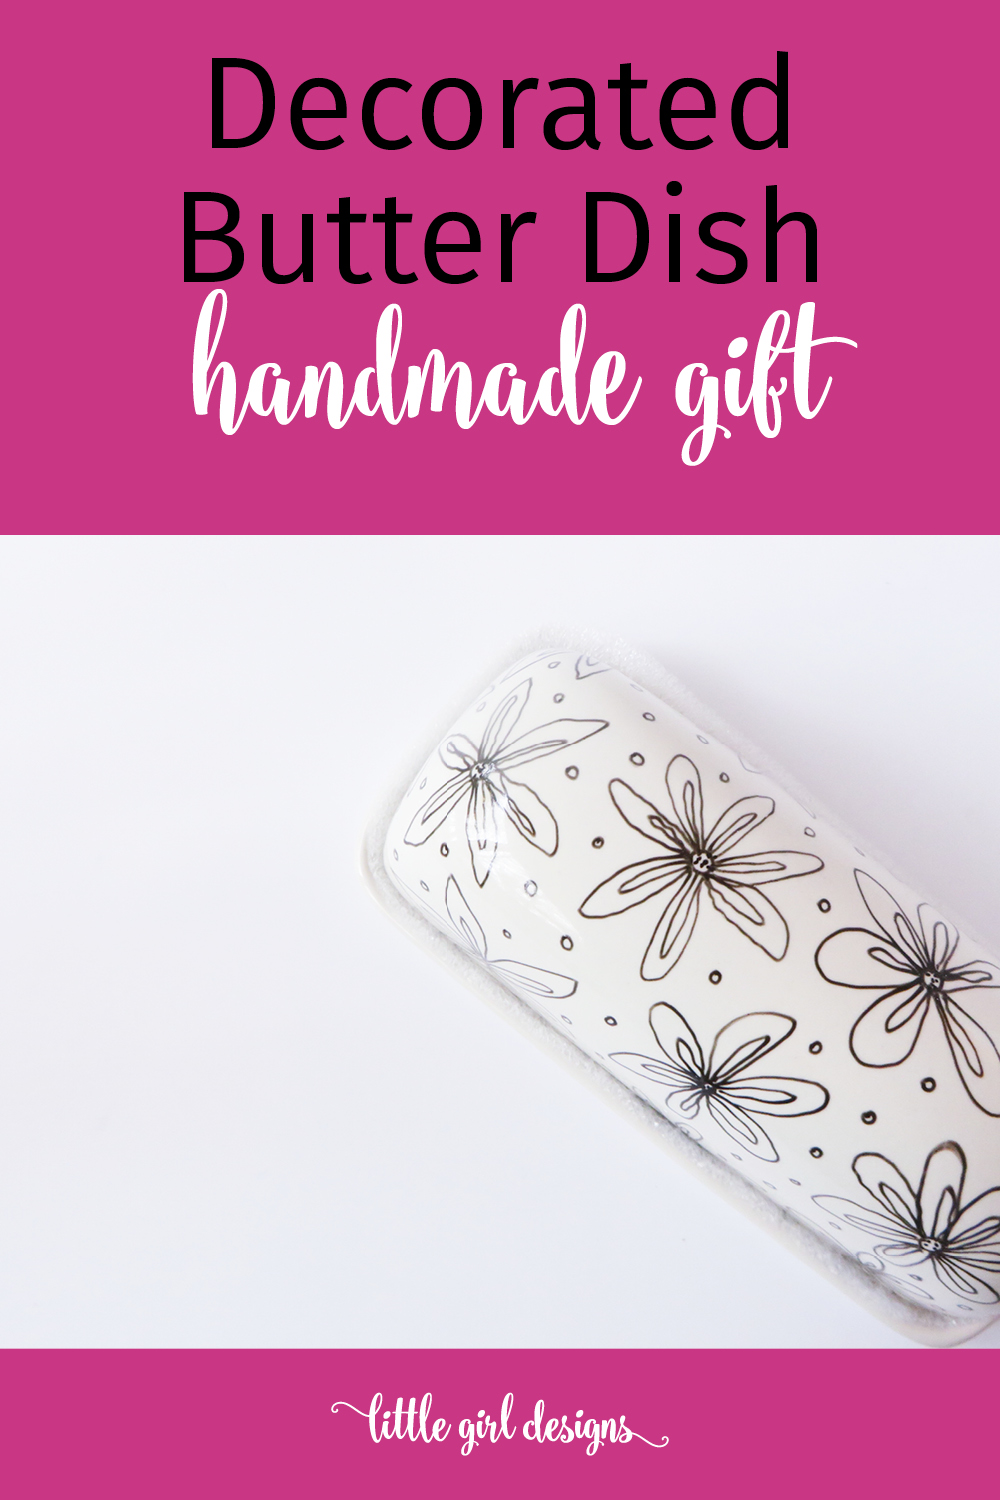 This super cute doodled butter dish would make a great housewarming, Christmas, or birthday present. All you need is a porcelain pen and plain butter dish!